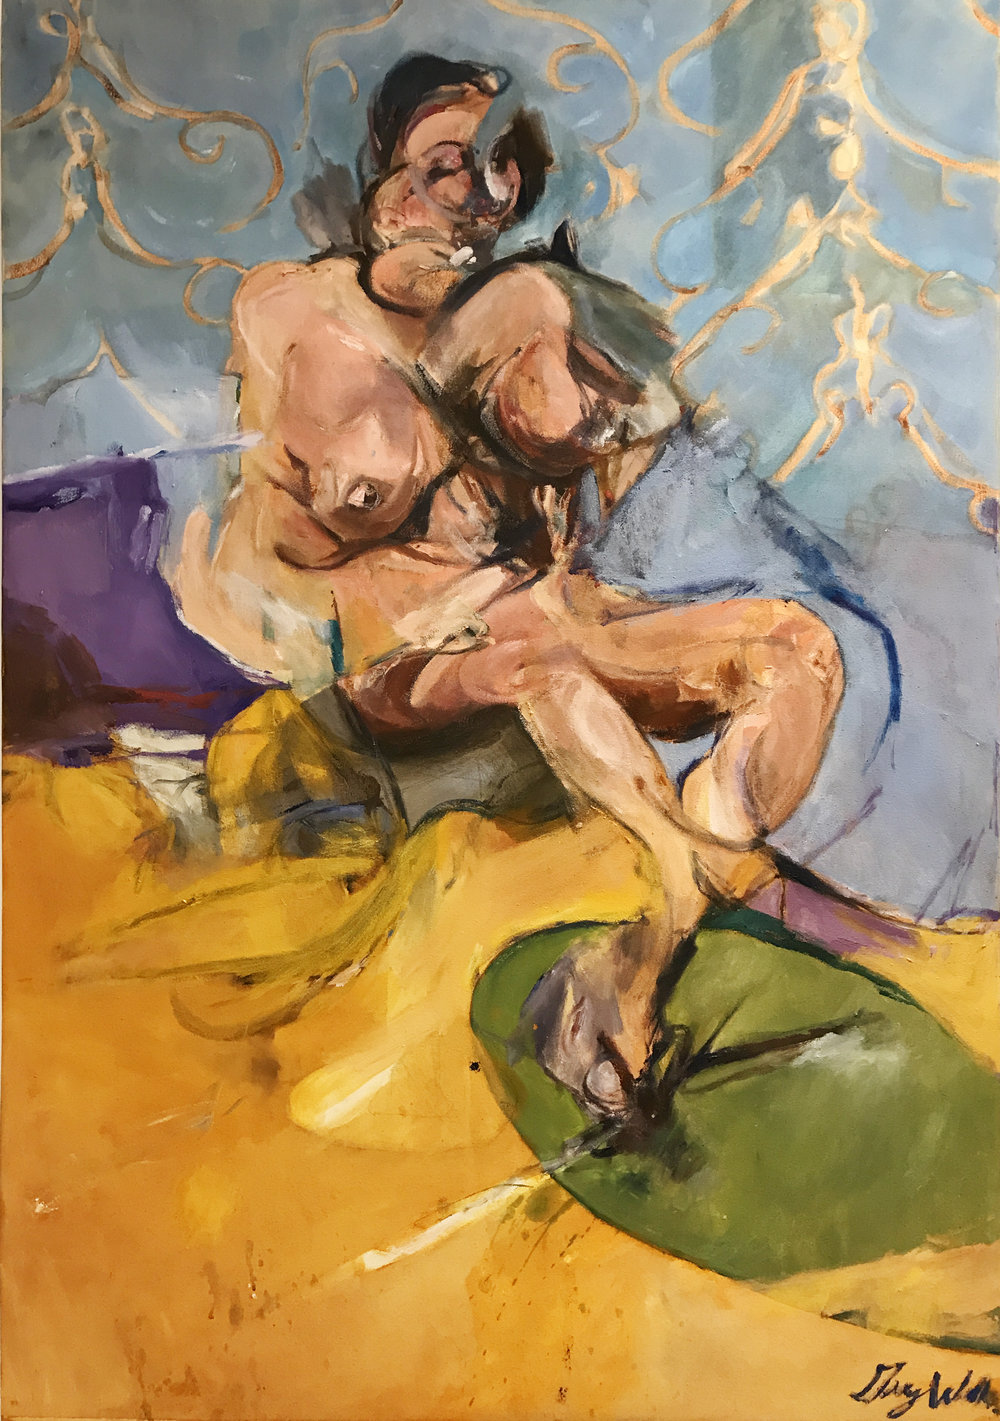 Woman Seated on Bed, 38x54, oil on canvas, $3900  + inquire